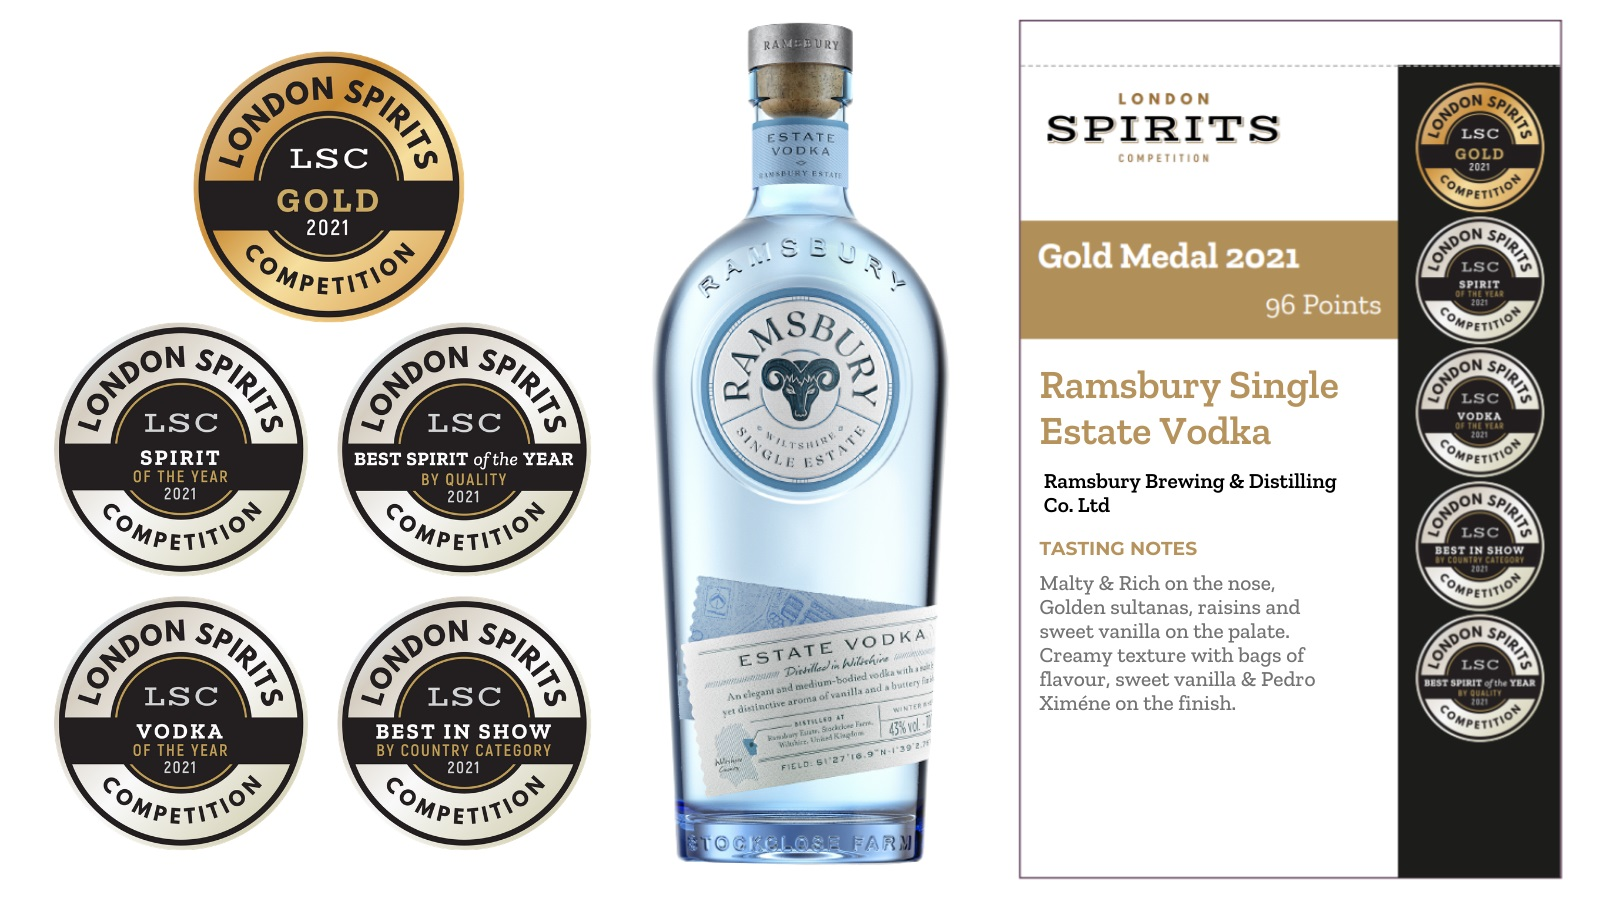 Quite the haul of medals that Ramsbury Single Estate Vodka won at the London Spirits Competition